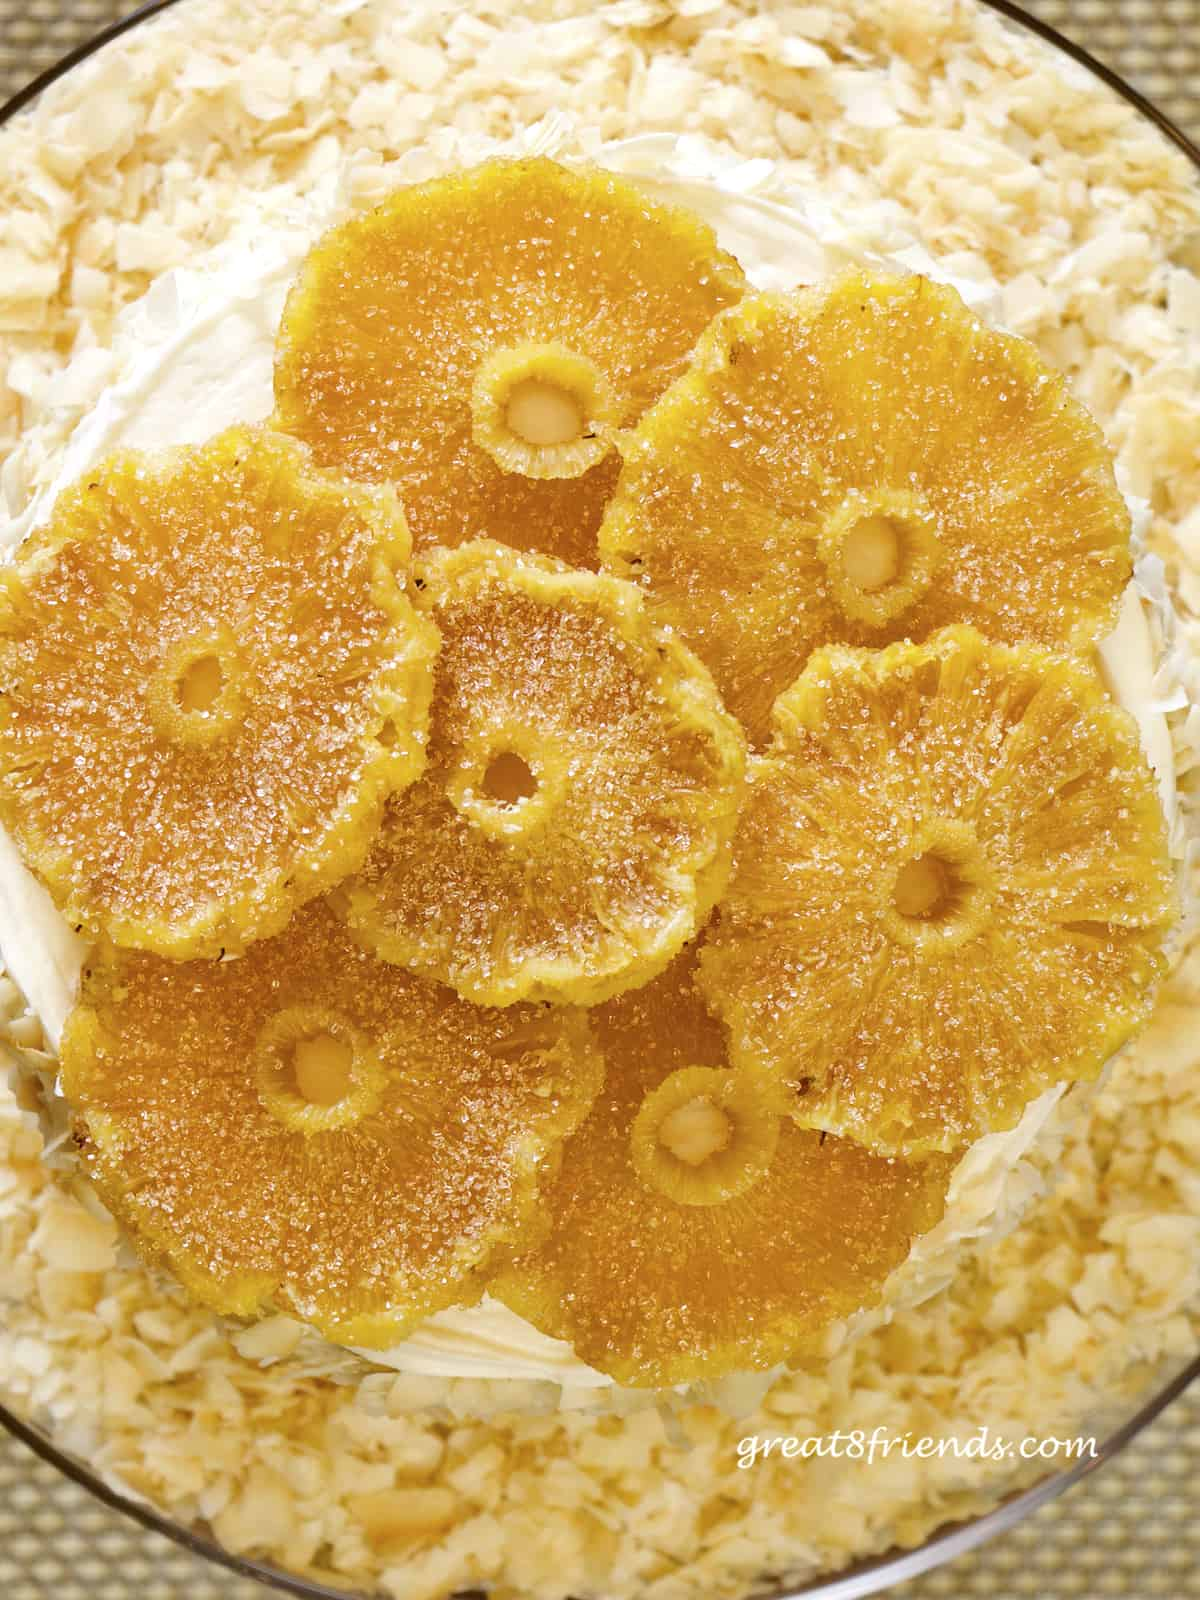 Overhead shot of round slices of candied pineapple.